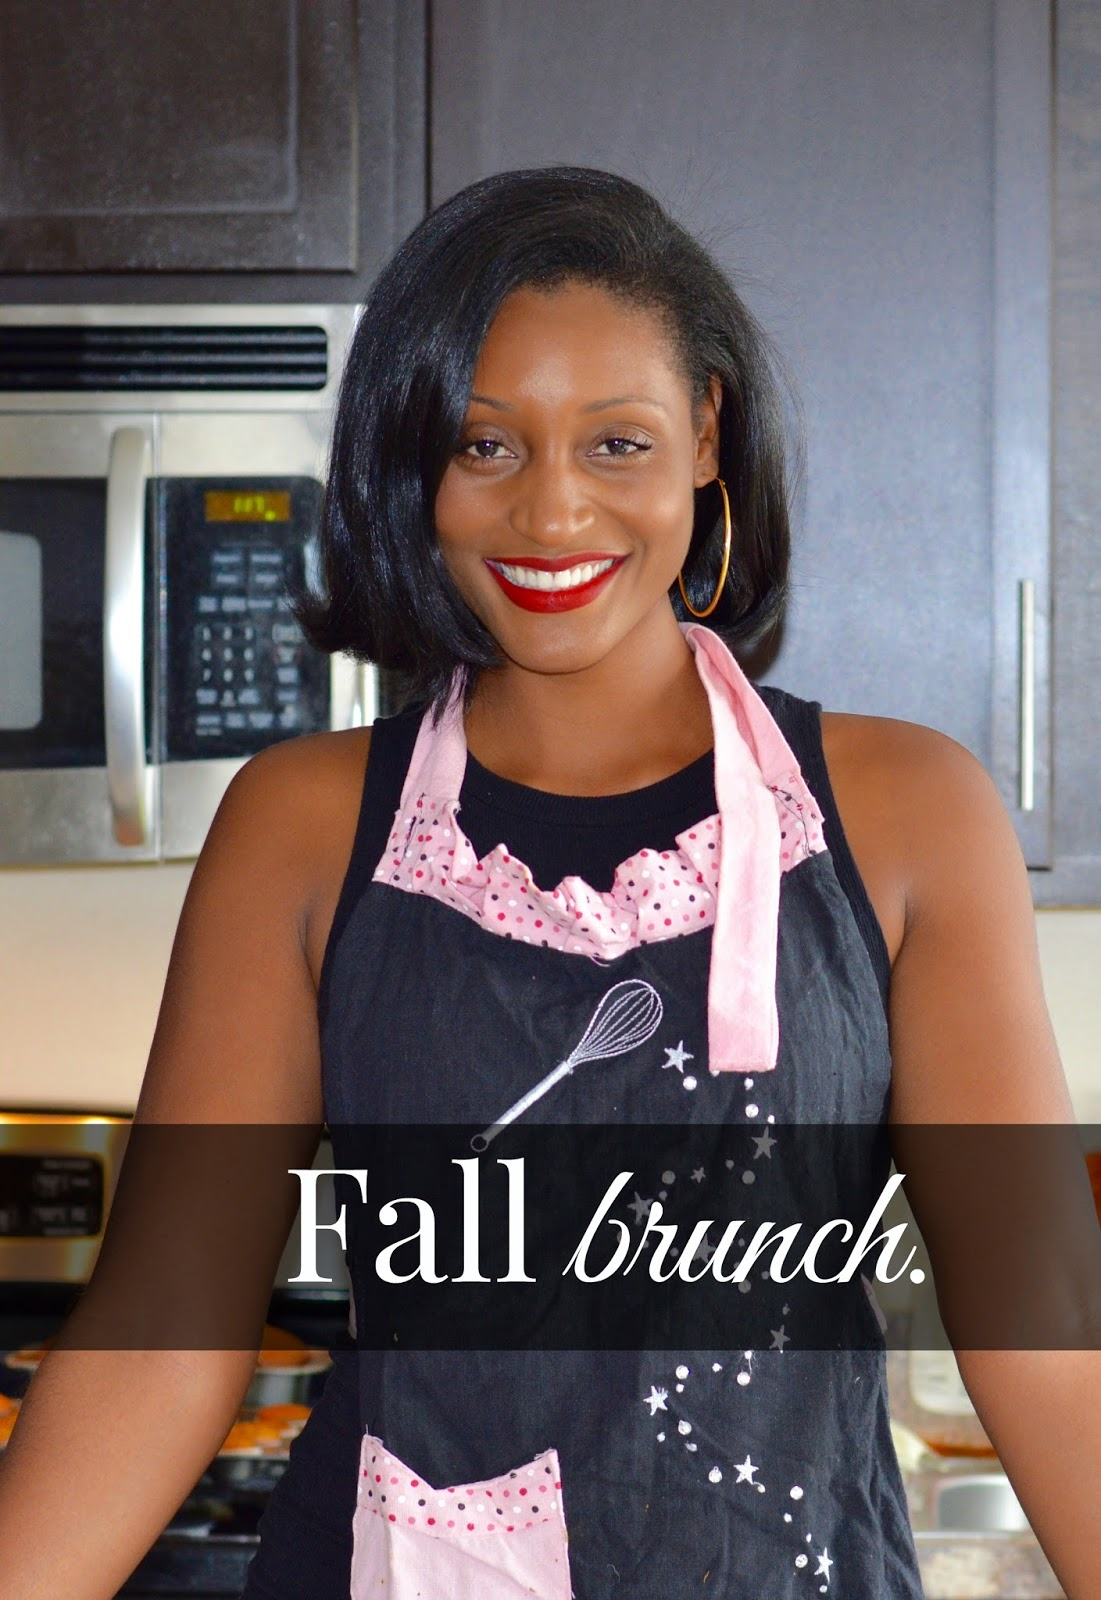 5 Easy Steps to Plan a Fall Brunch Party